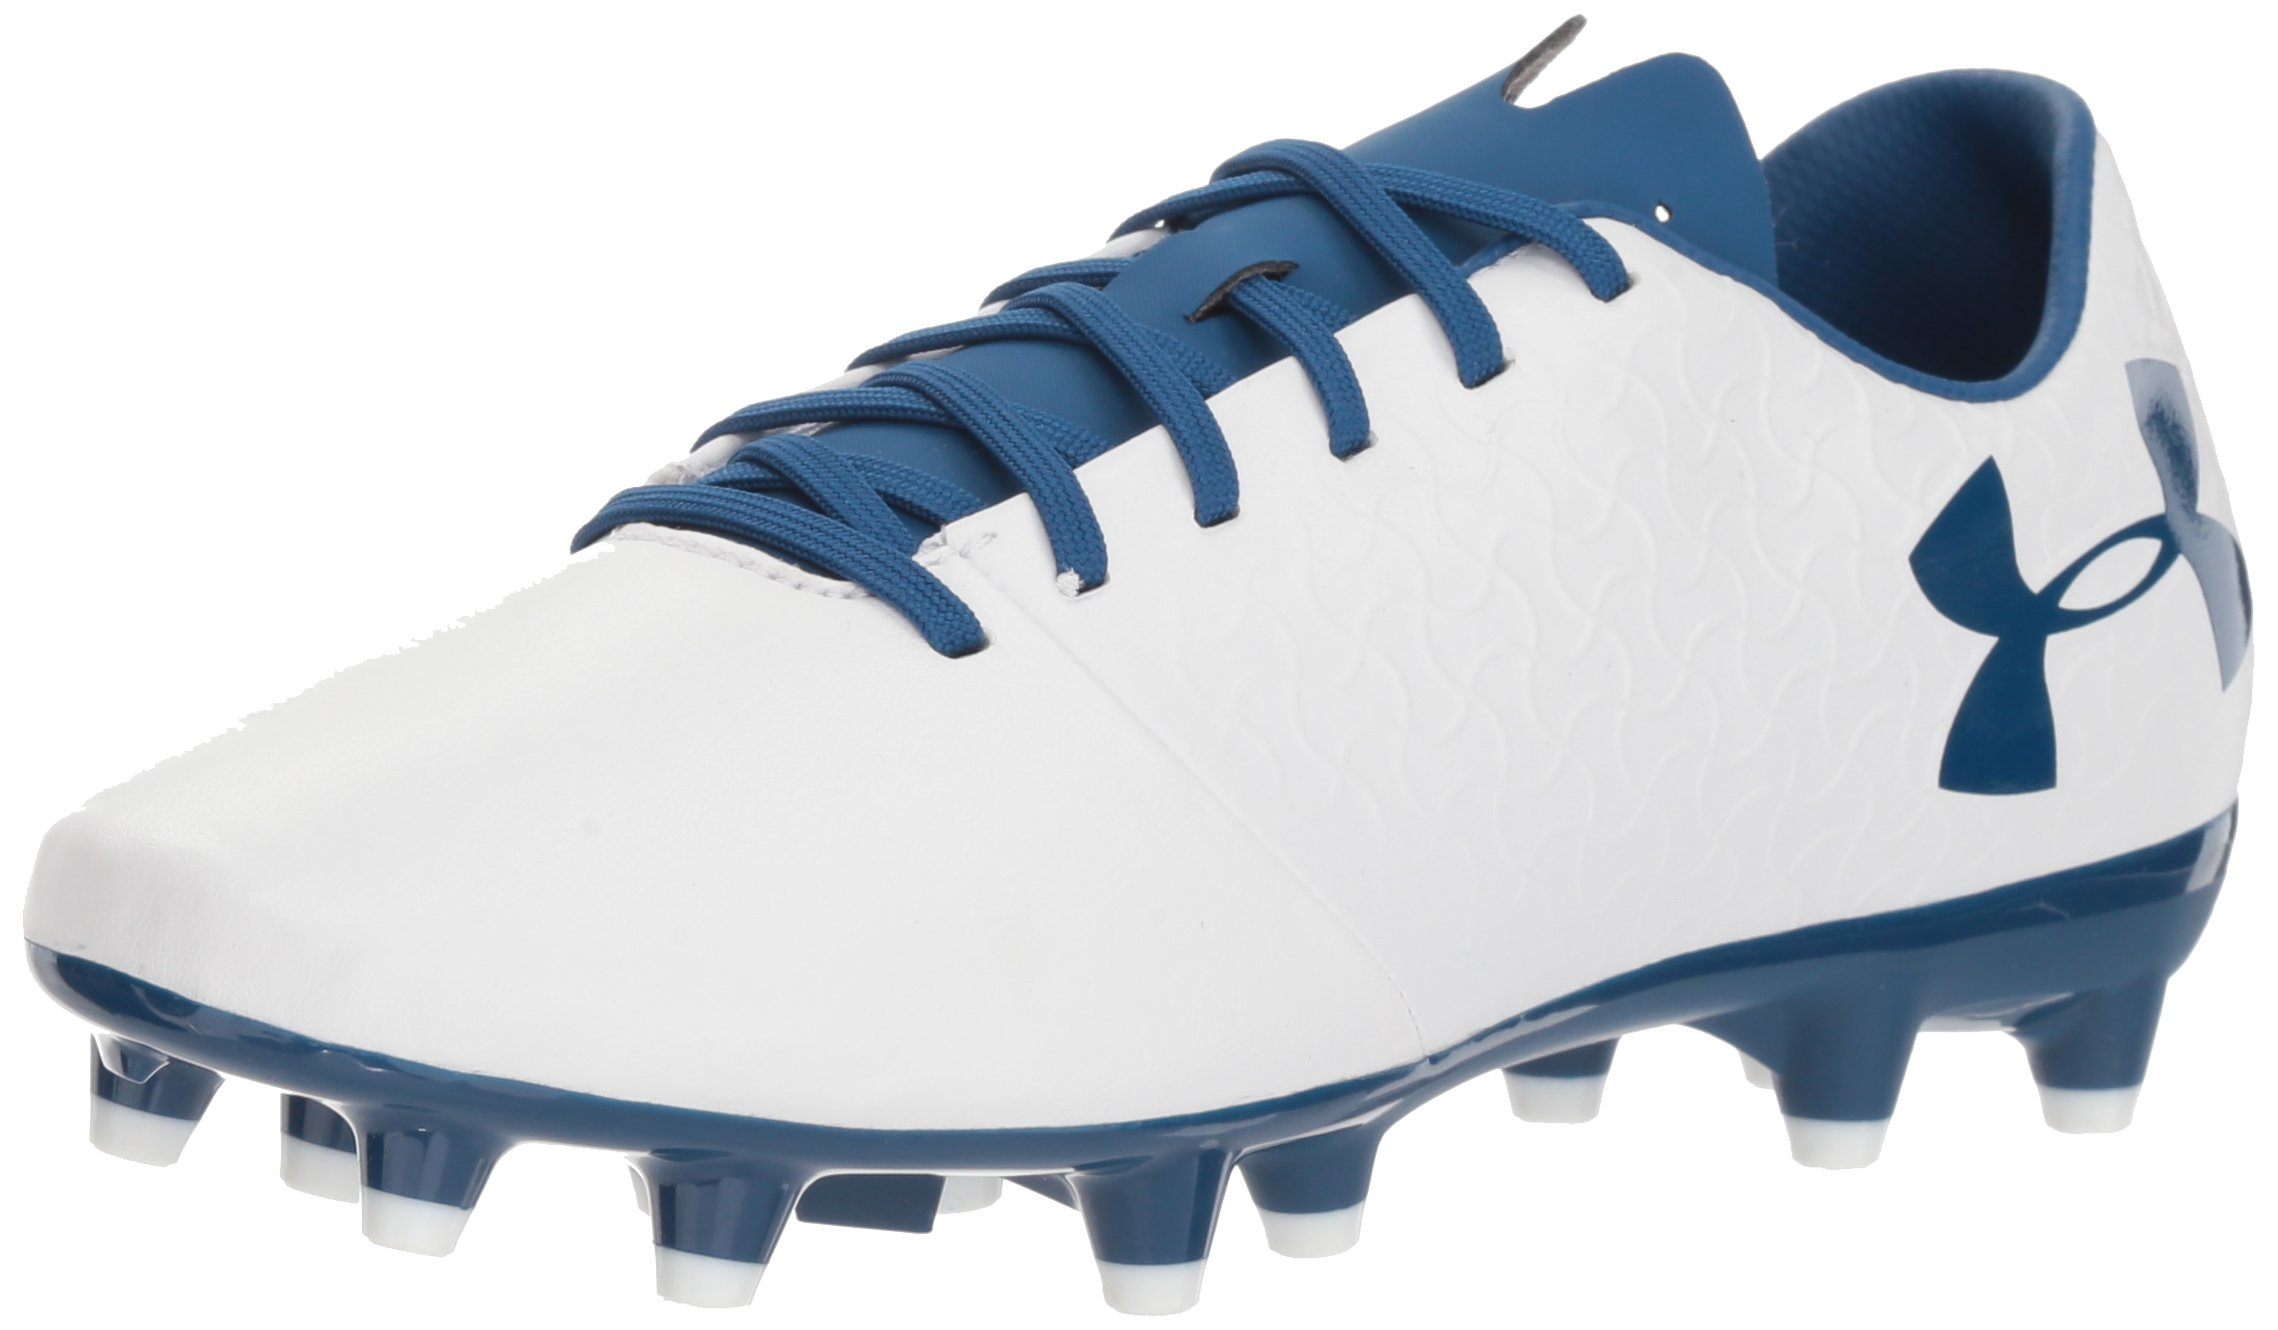 Under Armour Women's Magnetico Select FG Soccer Shoe, White (100)/Moroccan Blue, 7.5